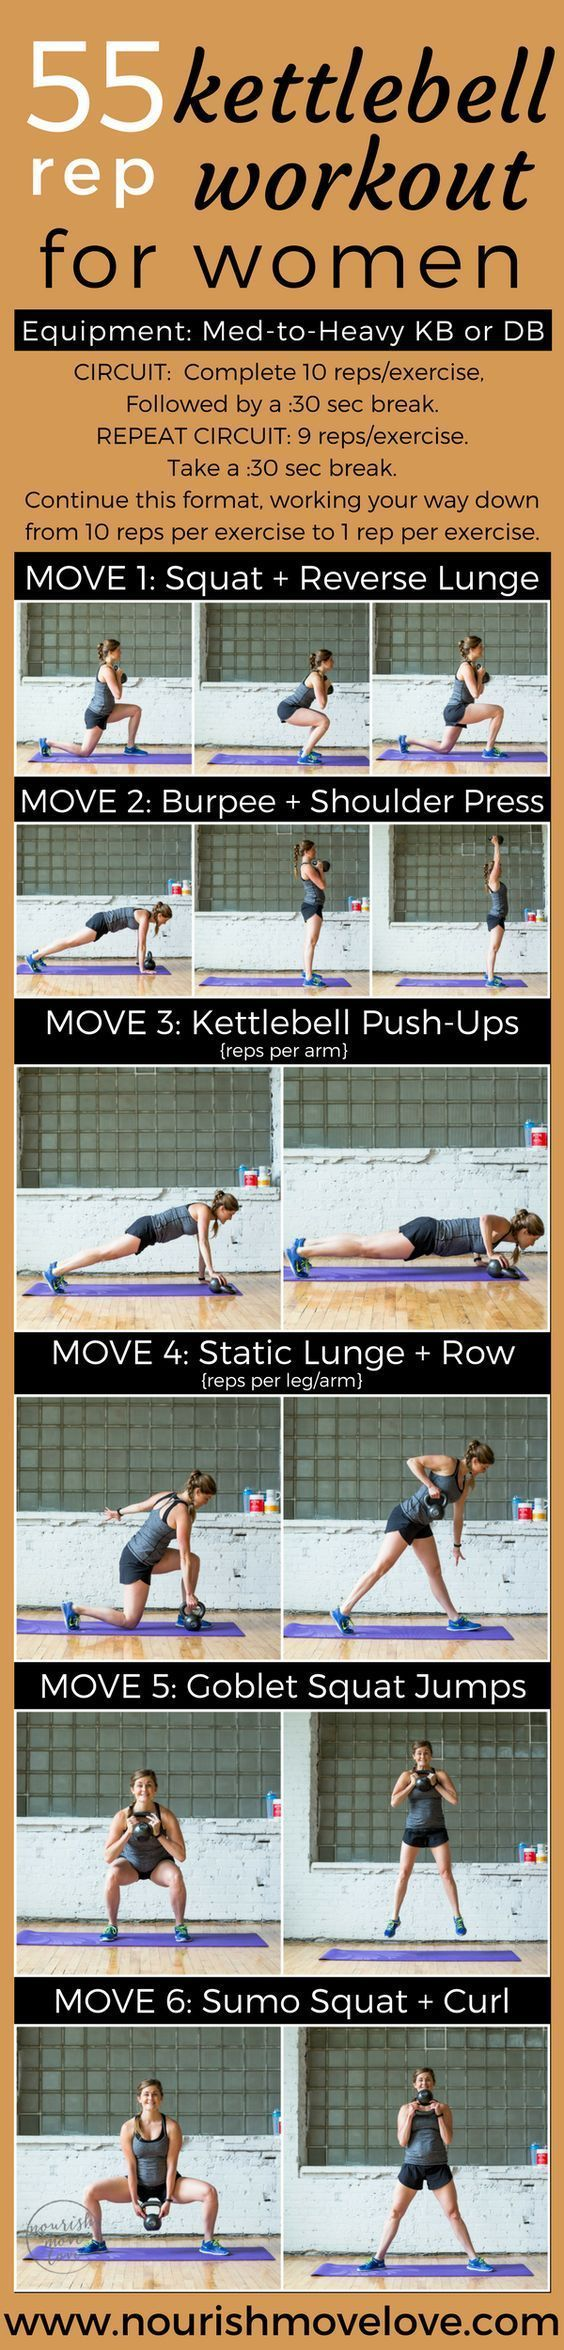 6 exercises, 55 reps, 30-minute total body strength and conditioning kettlebell workout. Perfect at-home or gym workout that targets your full body – upper body, arms, lower body, butt. Get fit for summer with this workout challenge. Squat, lunge, burpee,